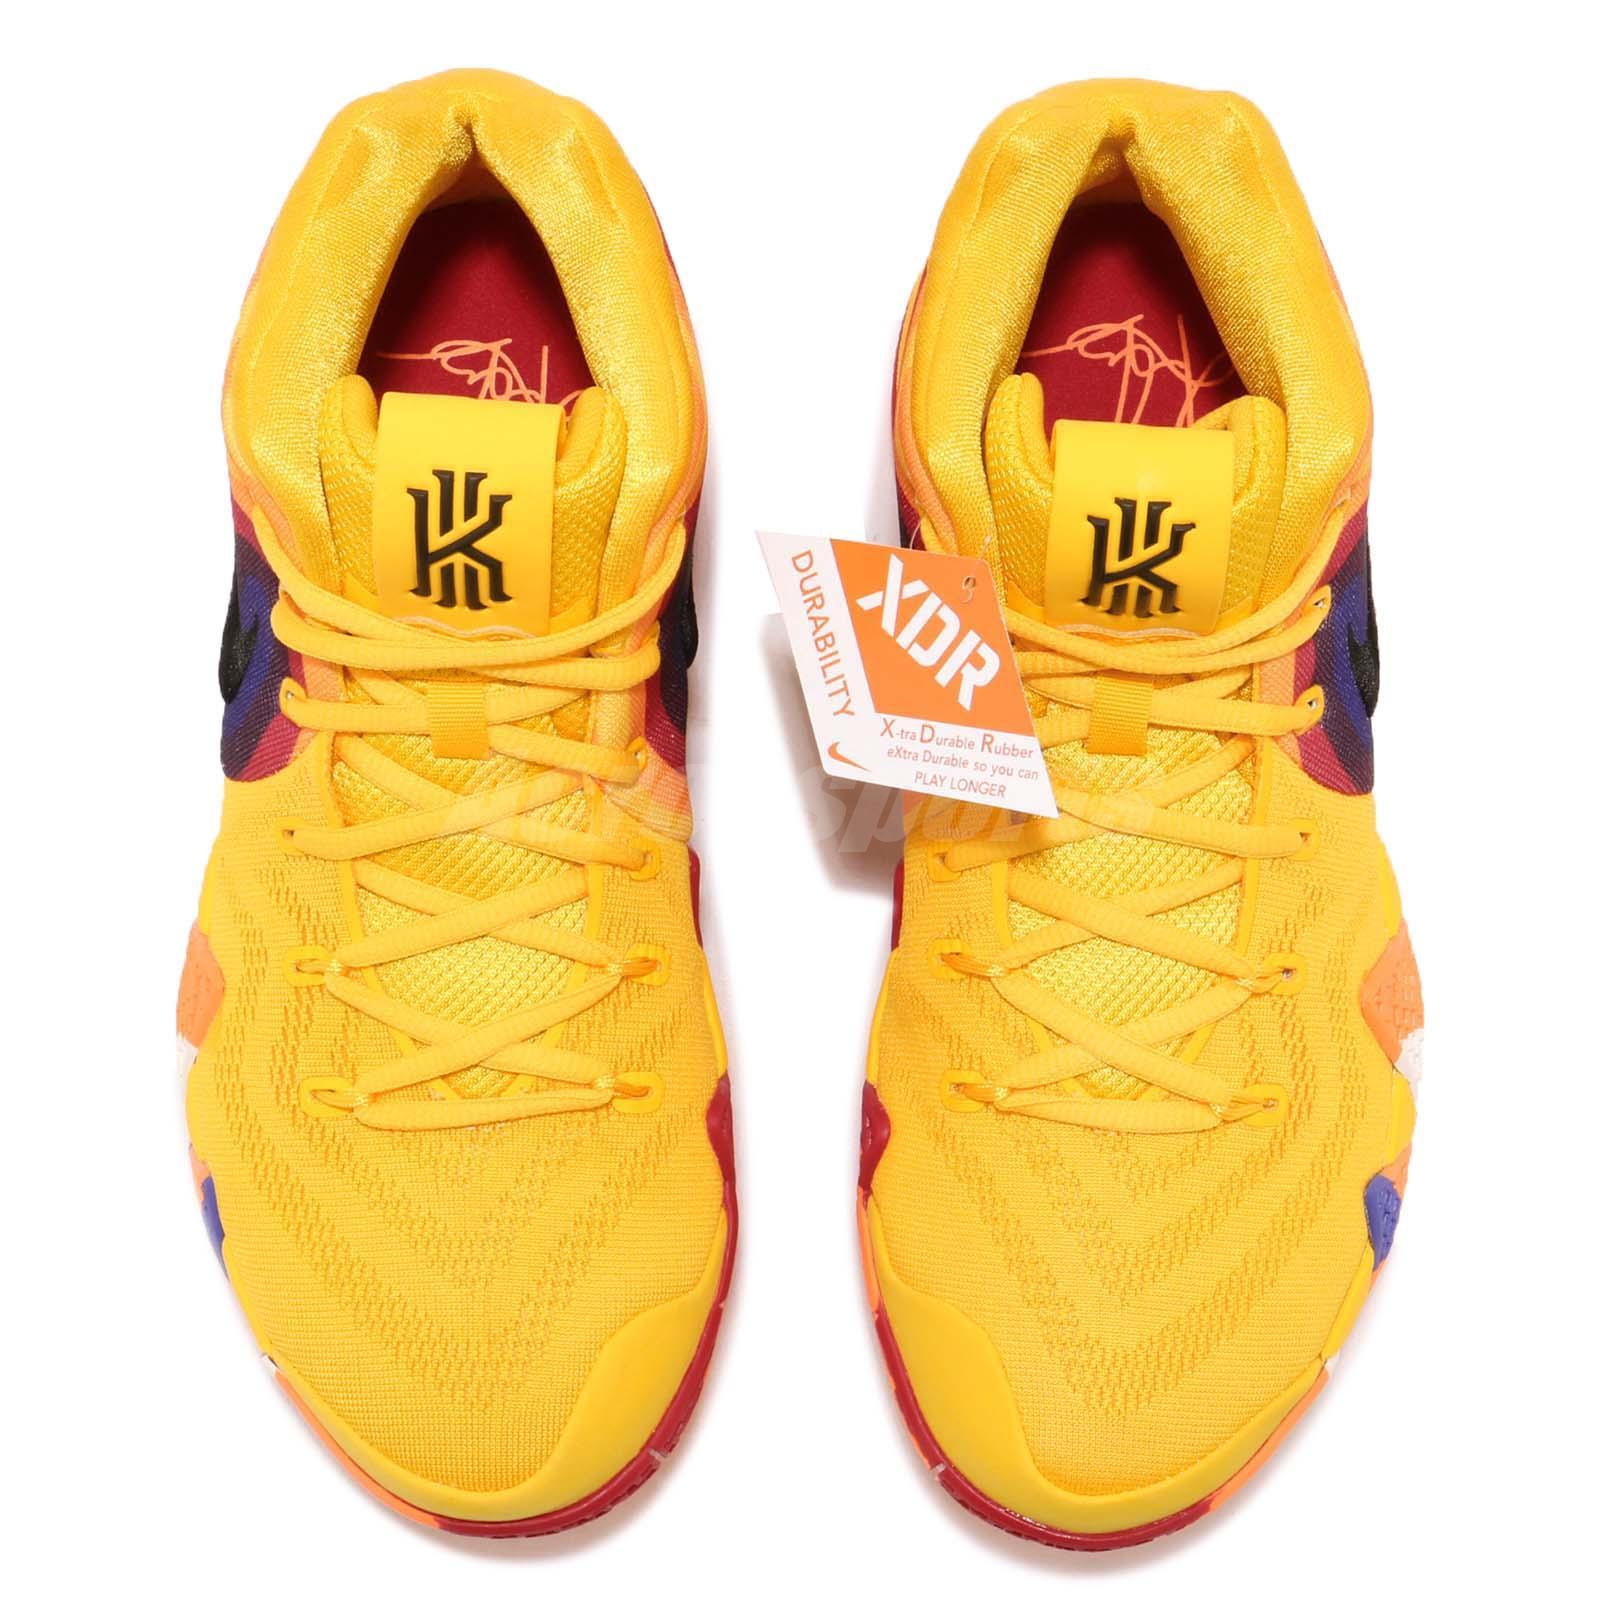 66735ff7531 Nike Kyrie 4 EP 70s Uncle Drew Decades Pack Yellow Basketball Shoes ...